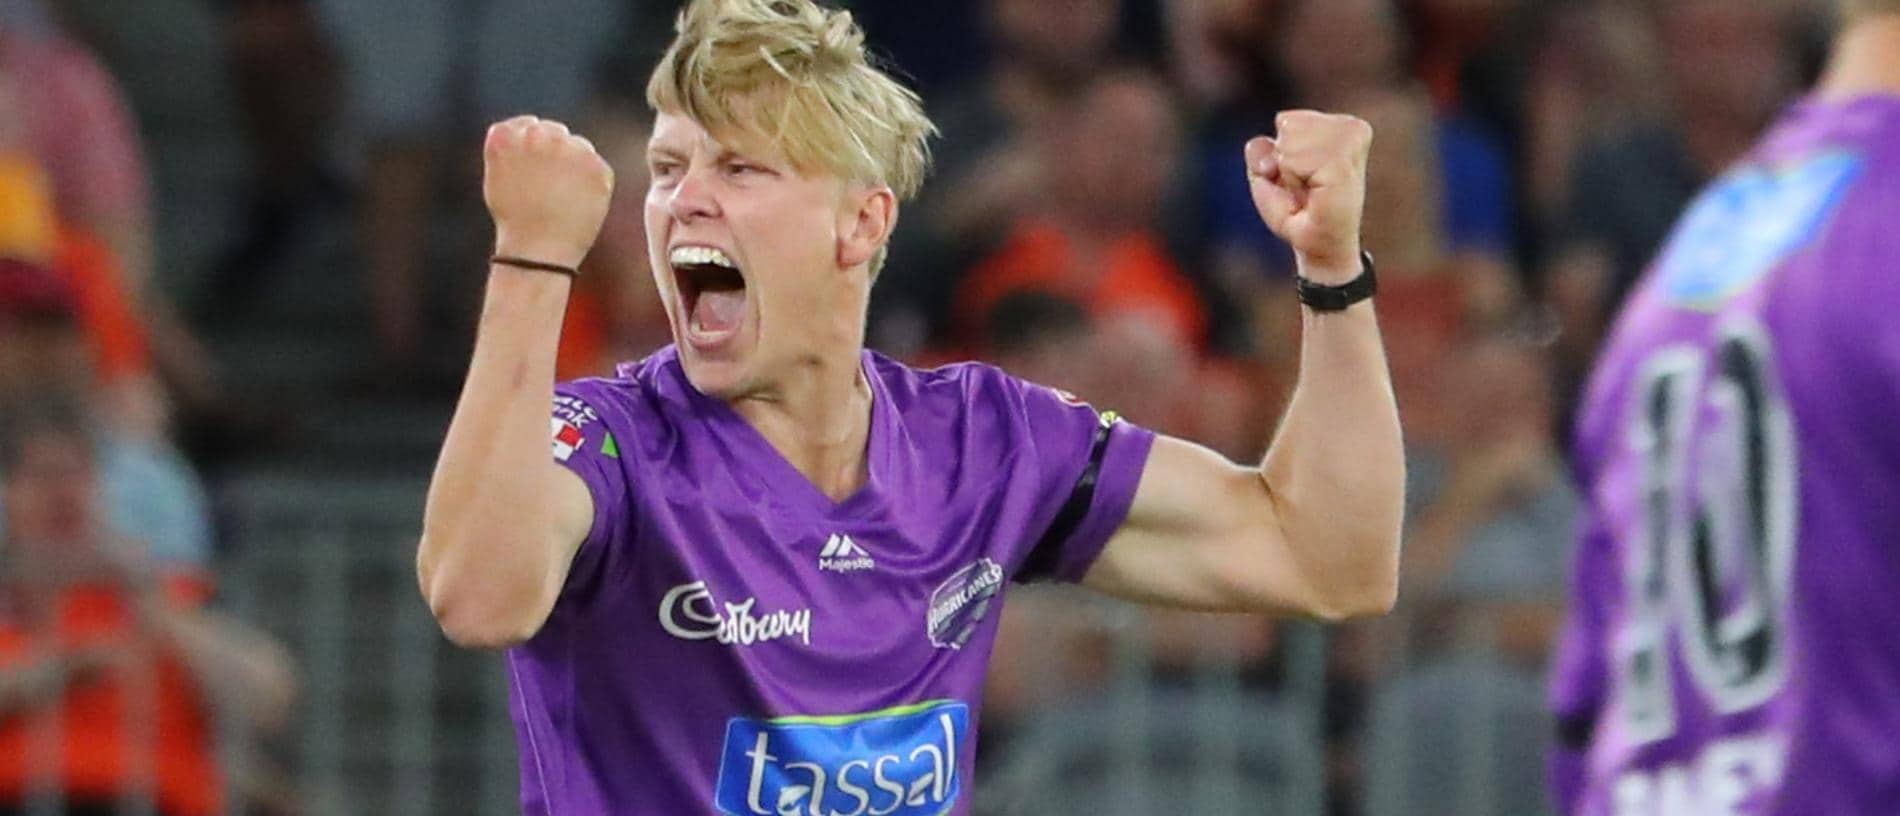 BBL - Perth Scorchers v Hobart Hurricanes